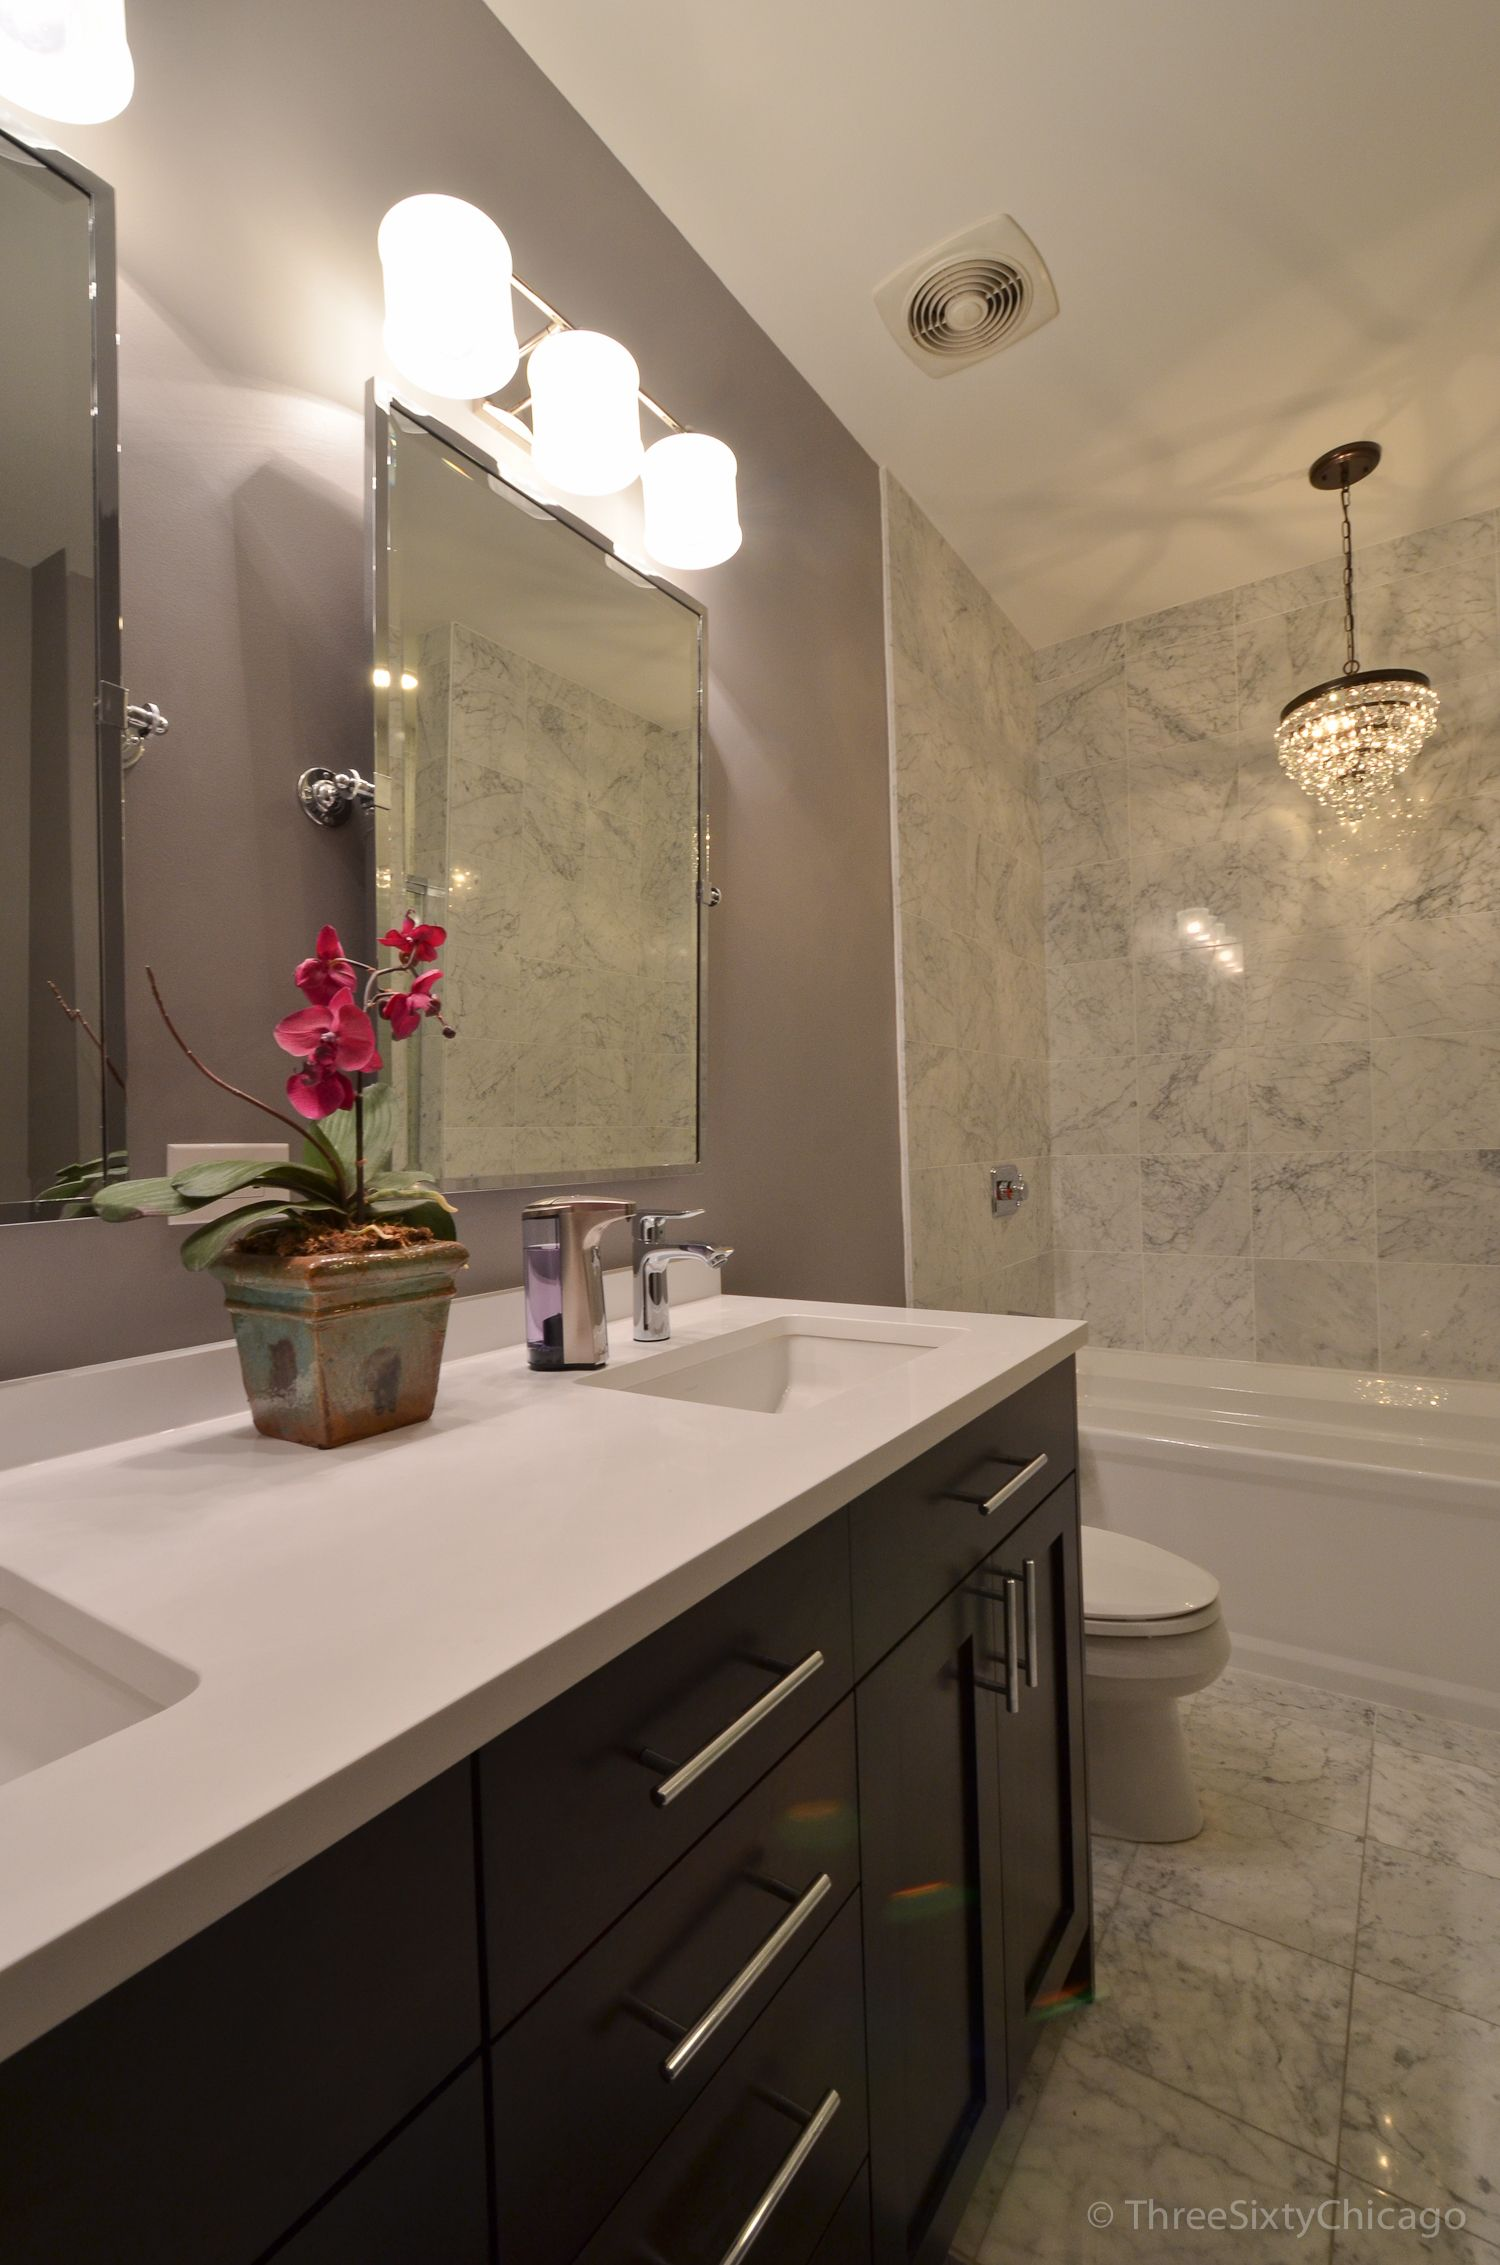 Awesome bathroom makeover in this Chicago loft. Materials are quartz ...